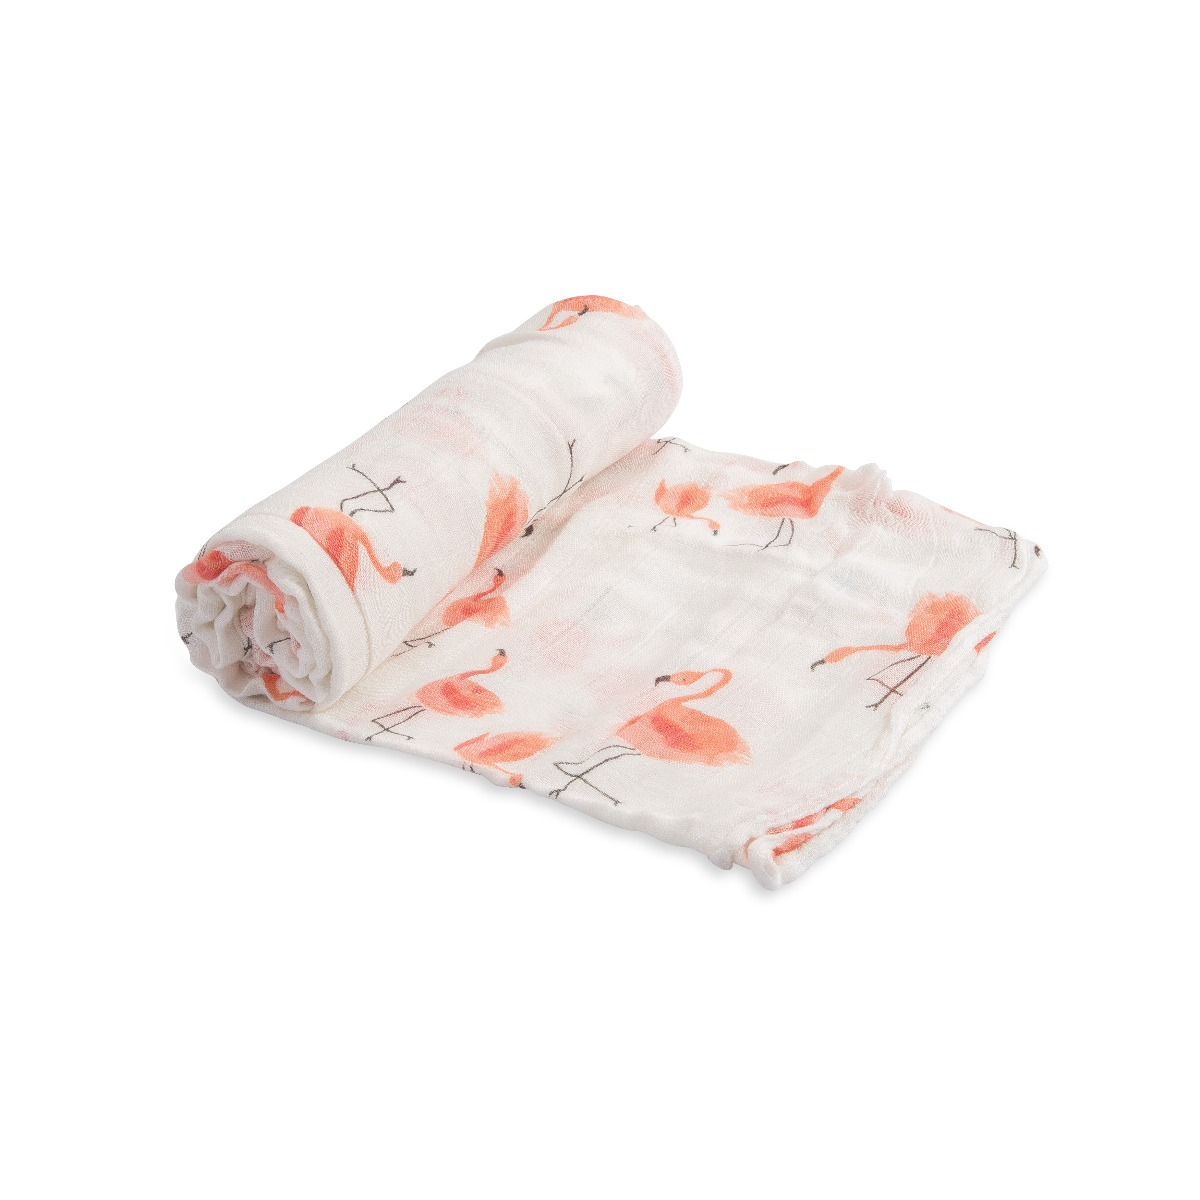 Llittle Unicorn Deluxe Swaddle Pink Ladies